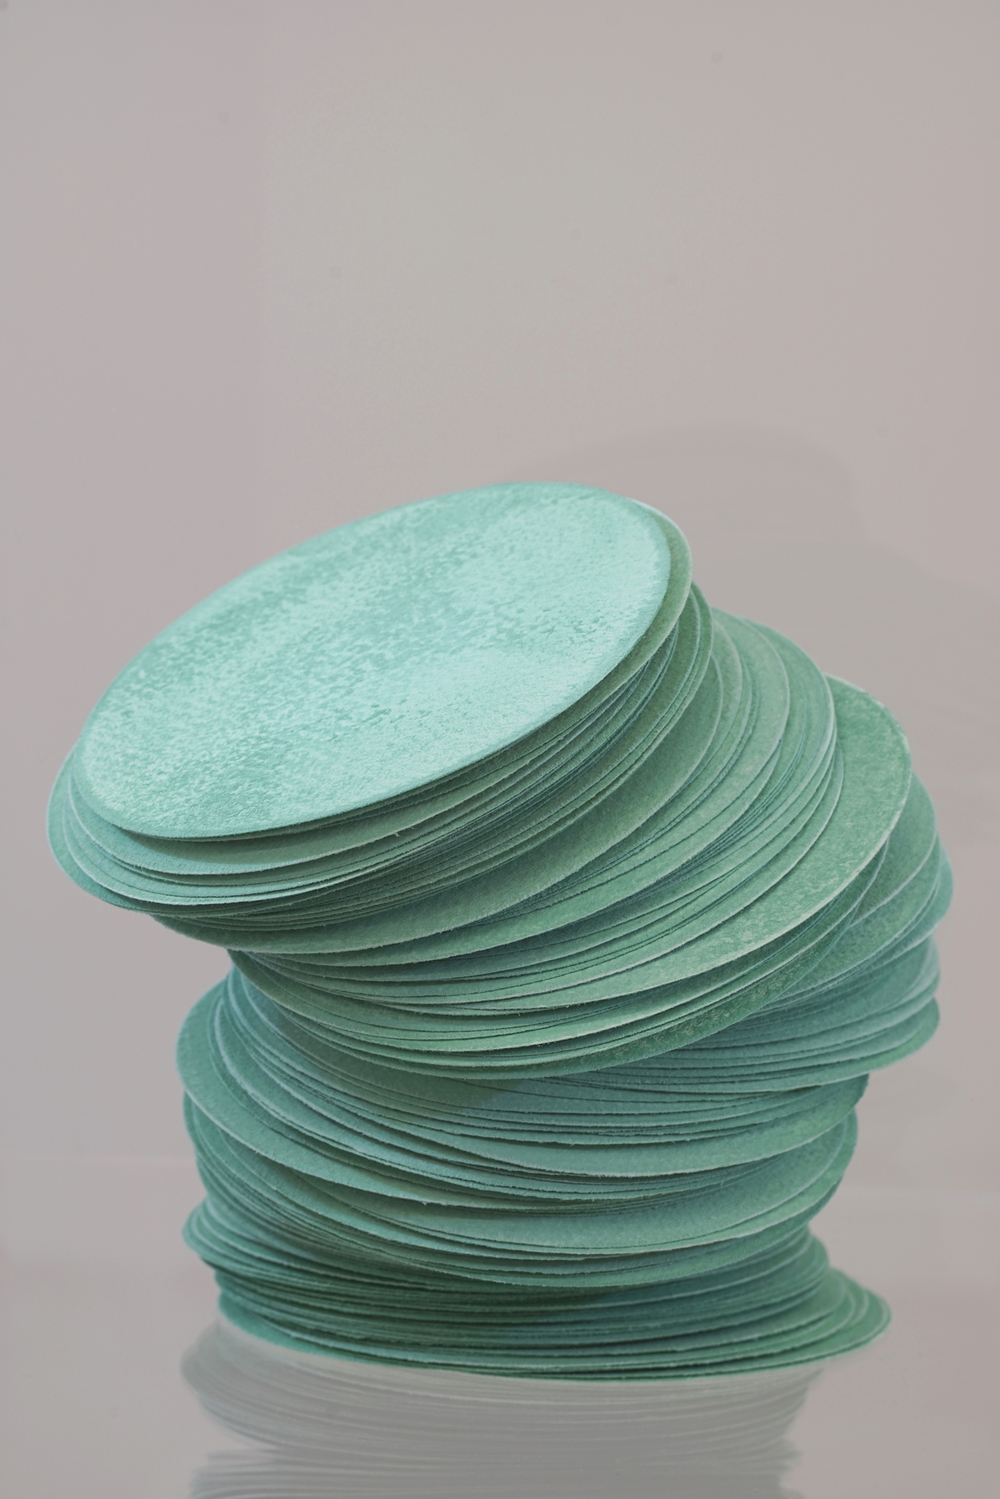 Grace Tan  n. 326 - carbonation   2015 Acid-free cotton pulp watercolour paper, Matsurokusho (malachite mineral pigment), archival EVA glue and nikawa (cow hide glue) H20 x W20 x D20 cm (artwork)